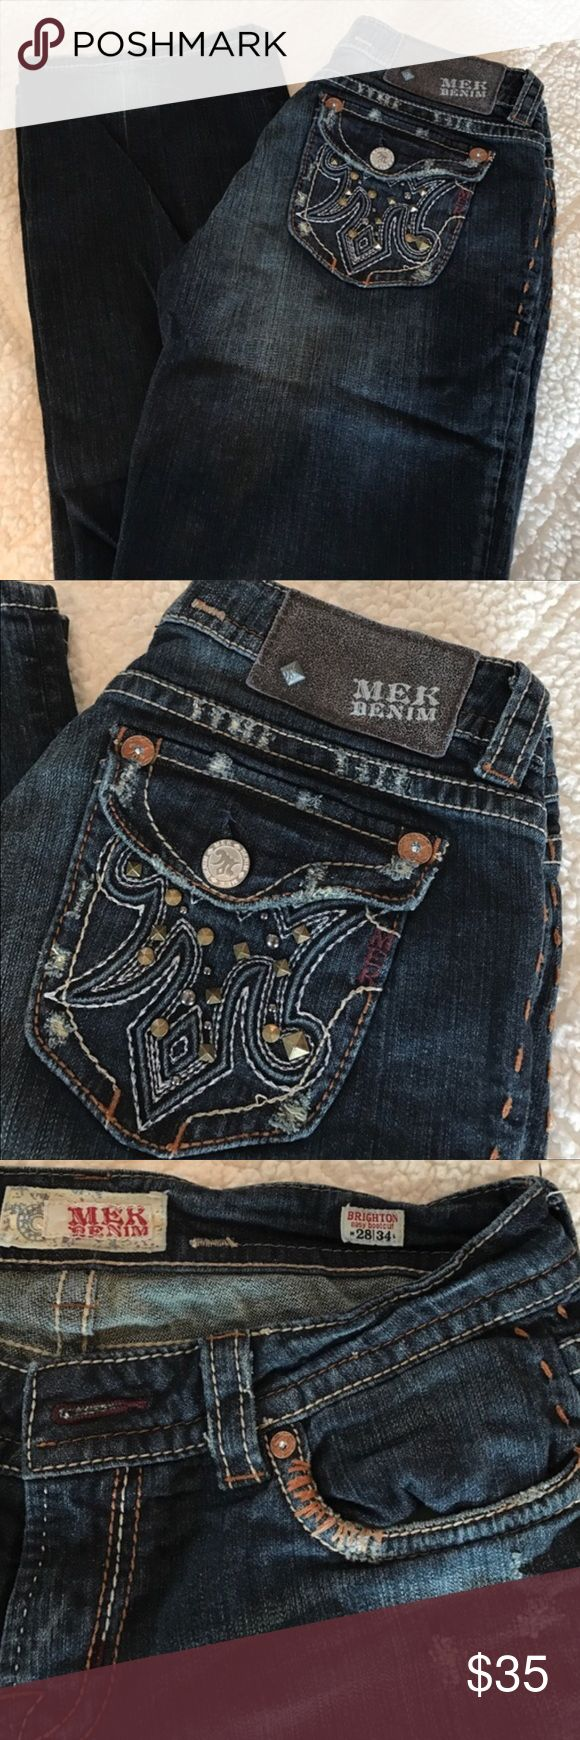 MEK 👖 Jeans Very cute dark denim jeans. Bought from another Posher but were too small for me. MEK Jeans